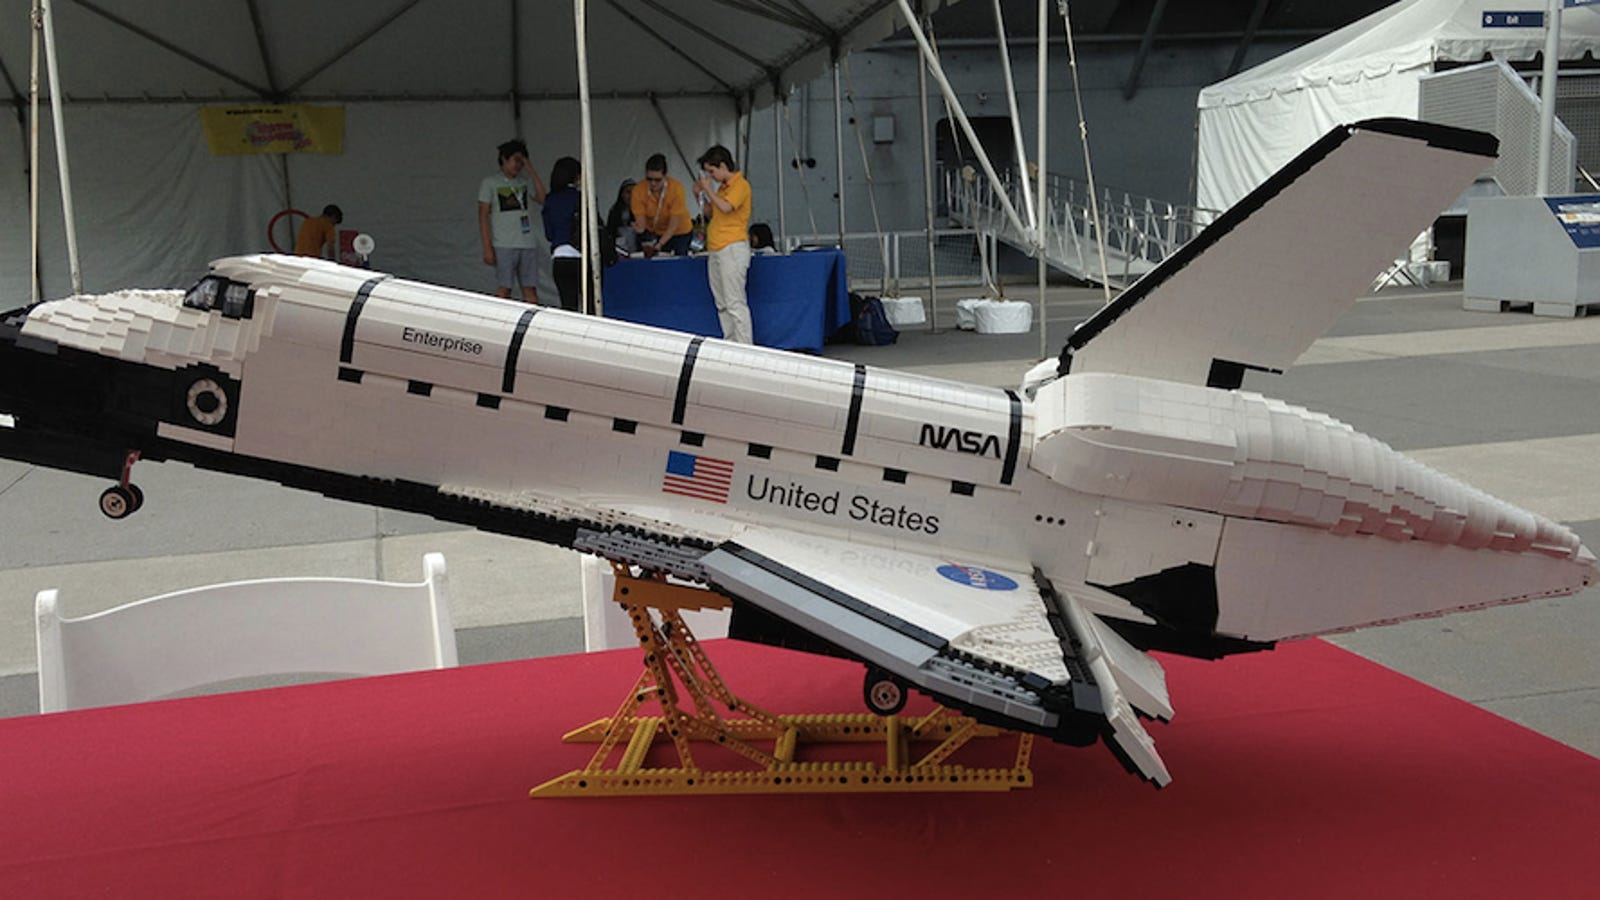 i want this 3 foot long lego space shuttle so badly. Black Bedroom Furniture Sets. Home Design Ideas